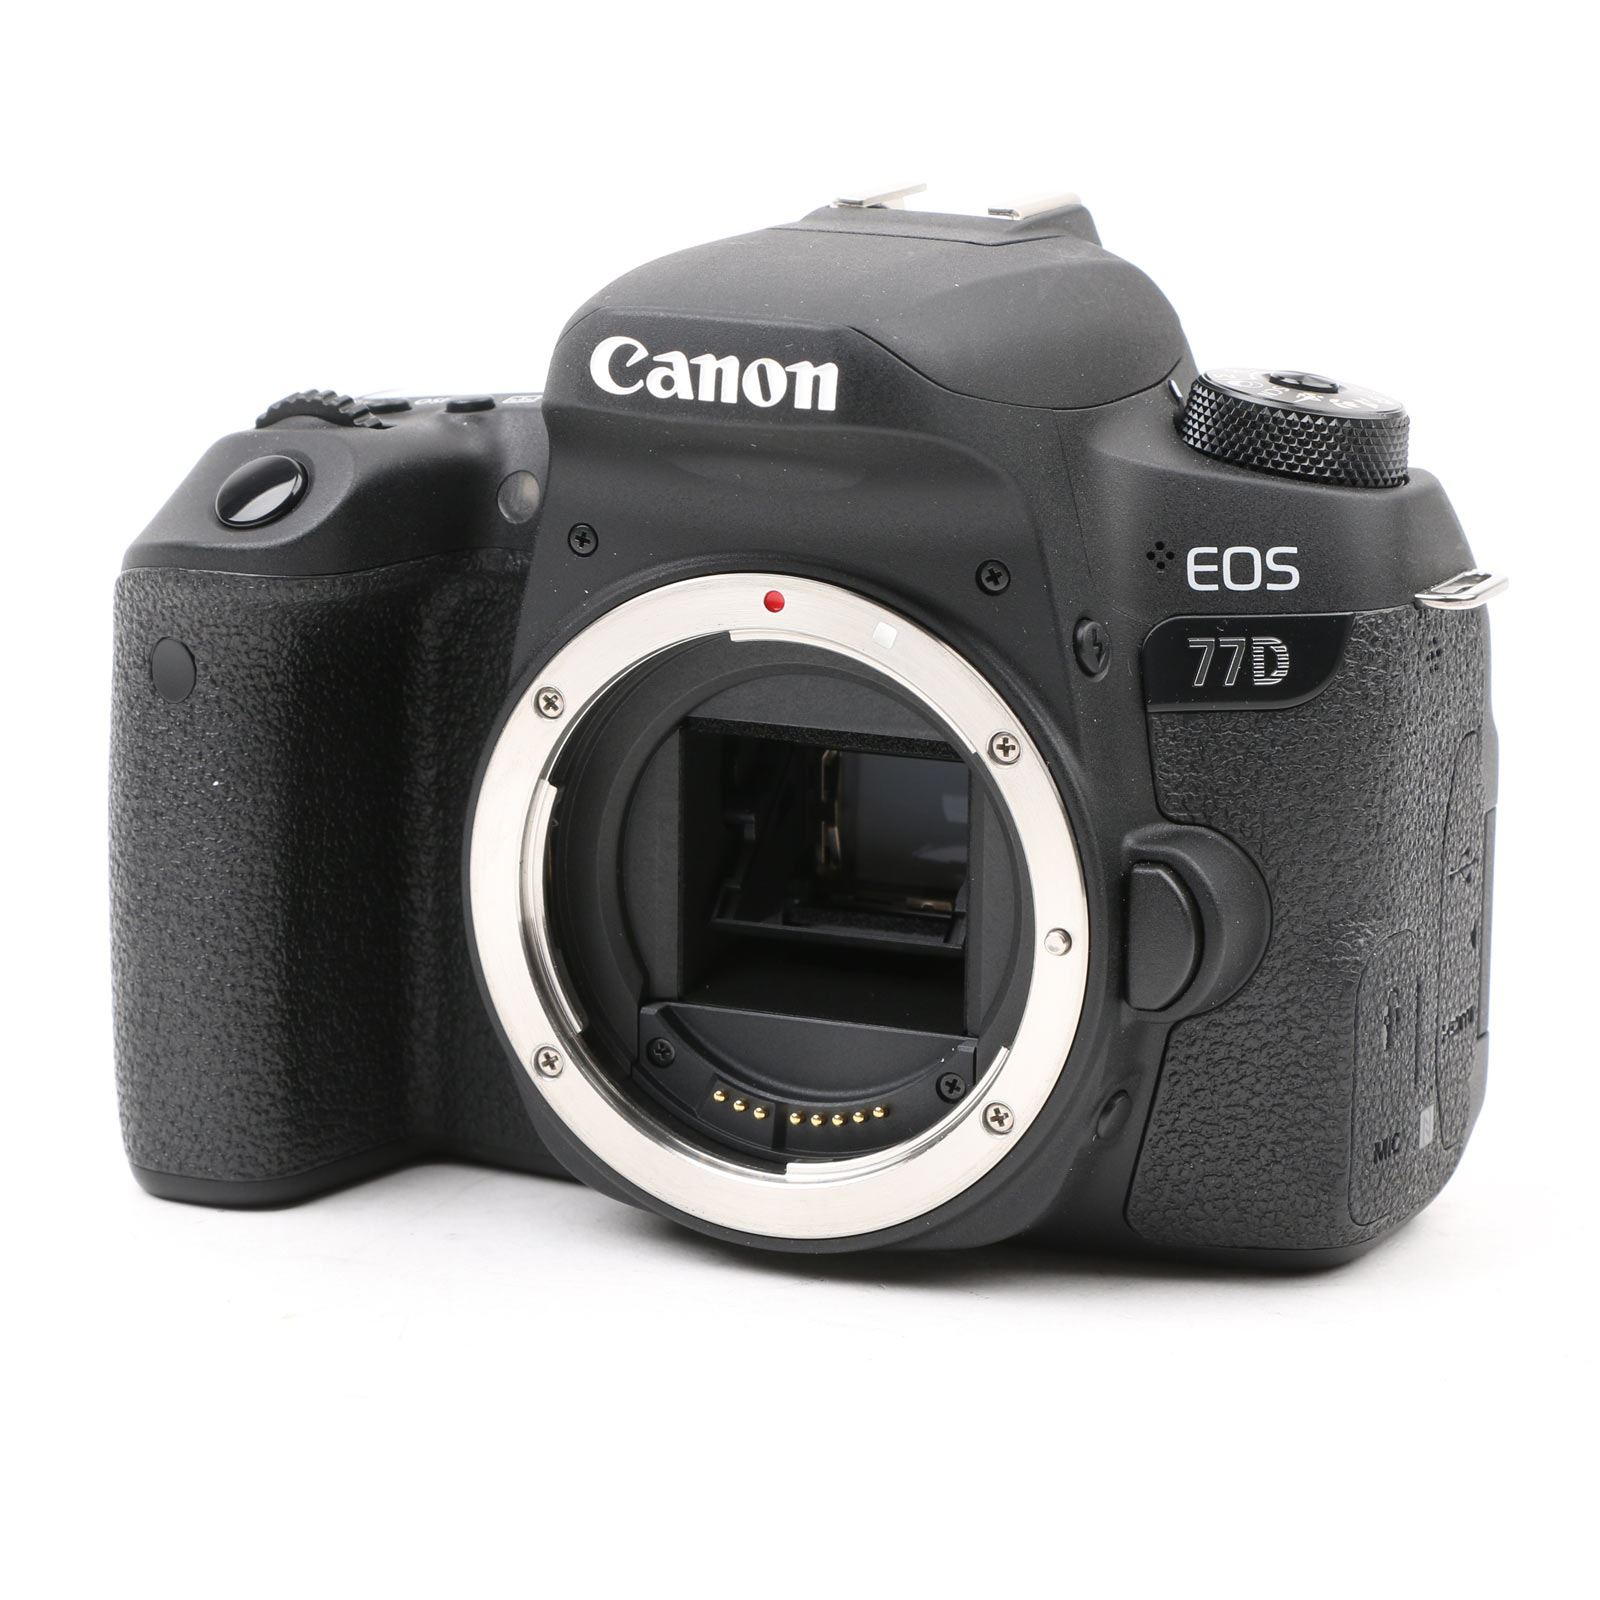 Image of Used Canon EOS 77D Digital SLR Camera Body